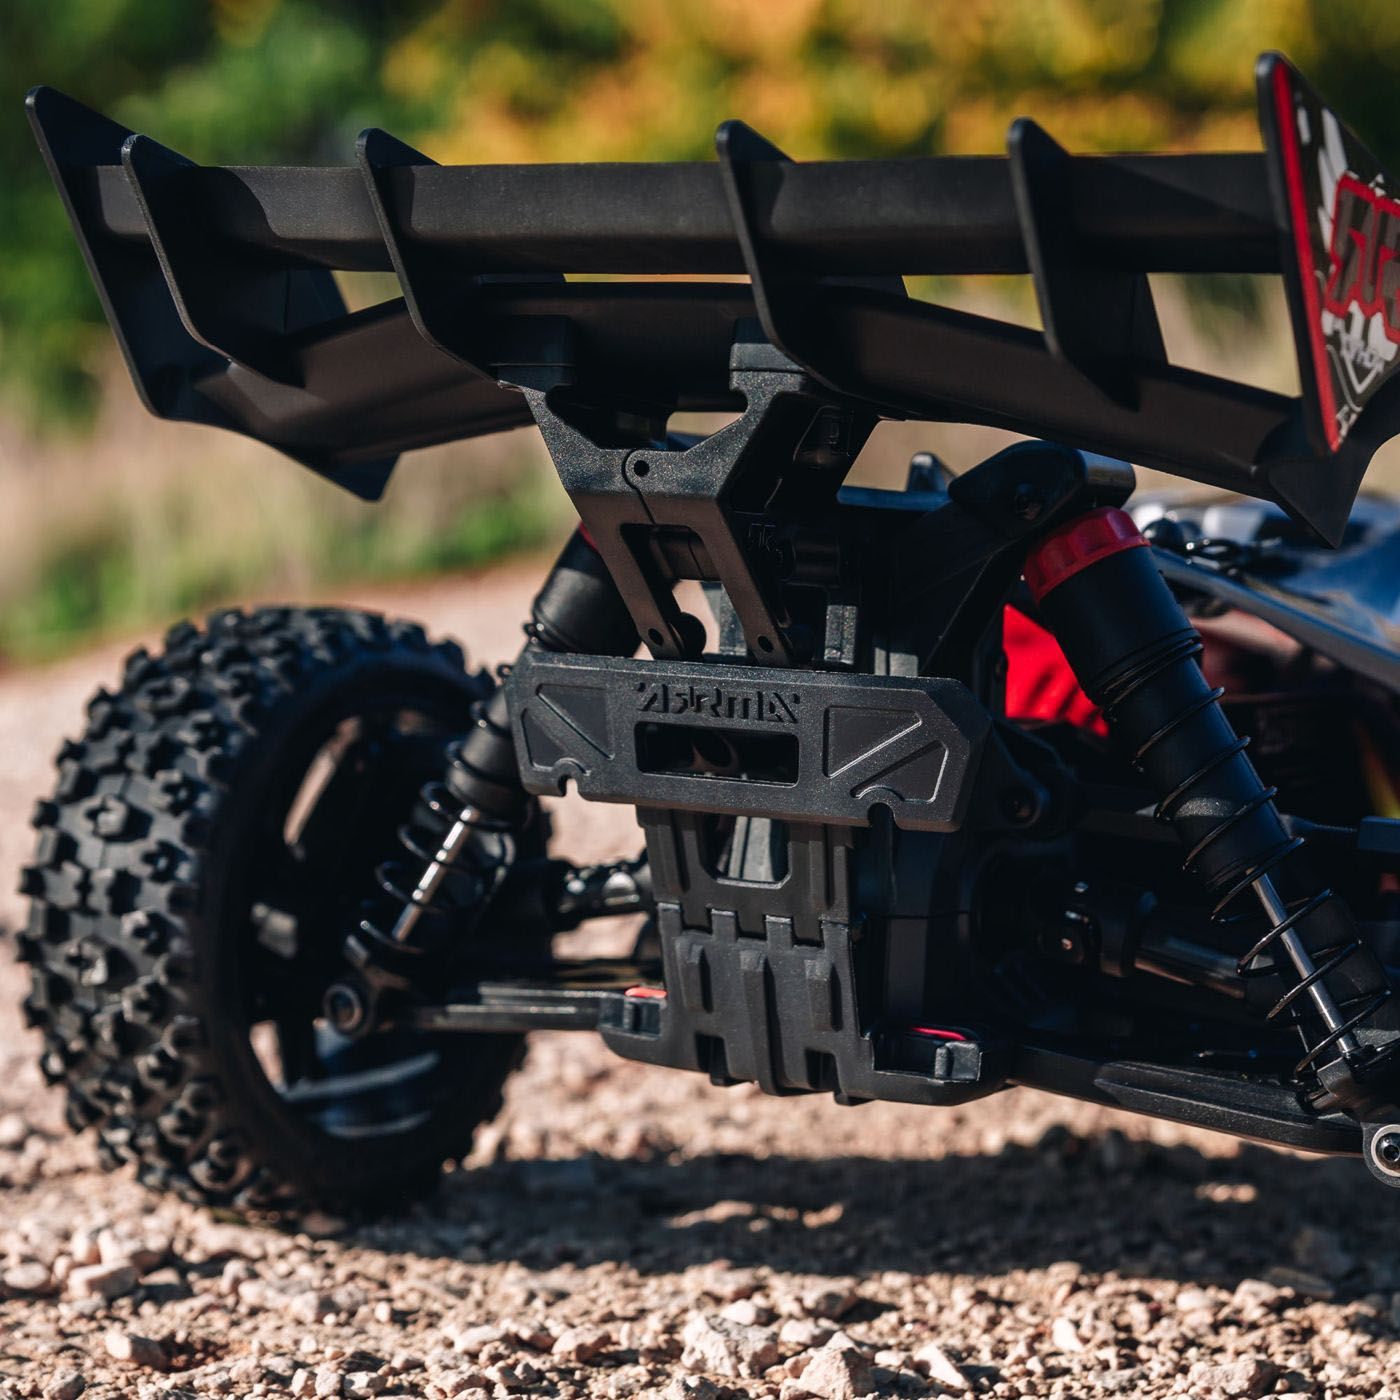 Arrma Typhon 3s Brushless 4wd Buggy rtr 9